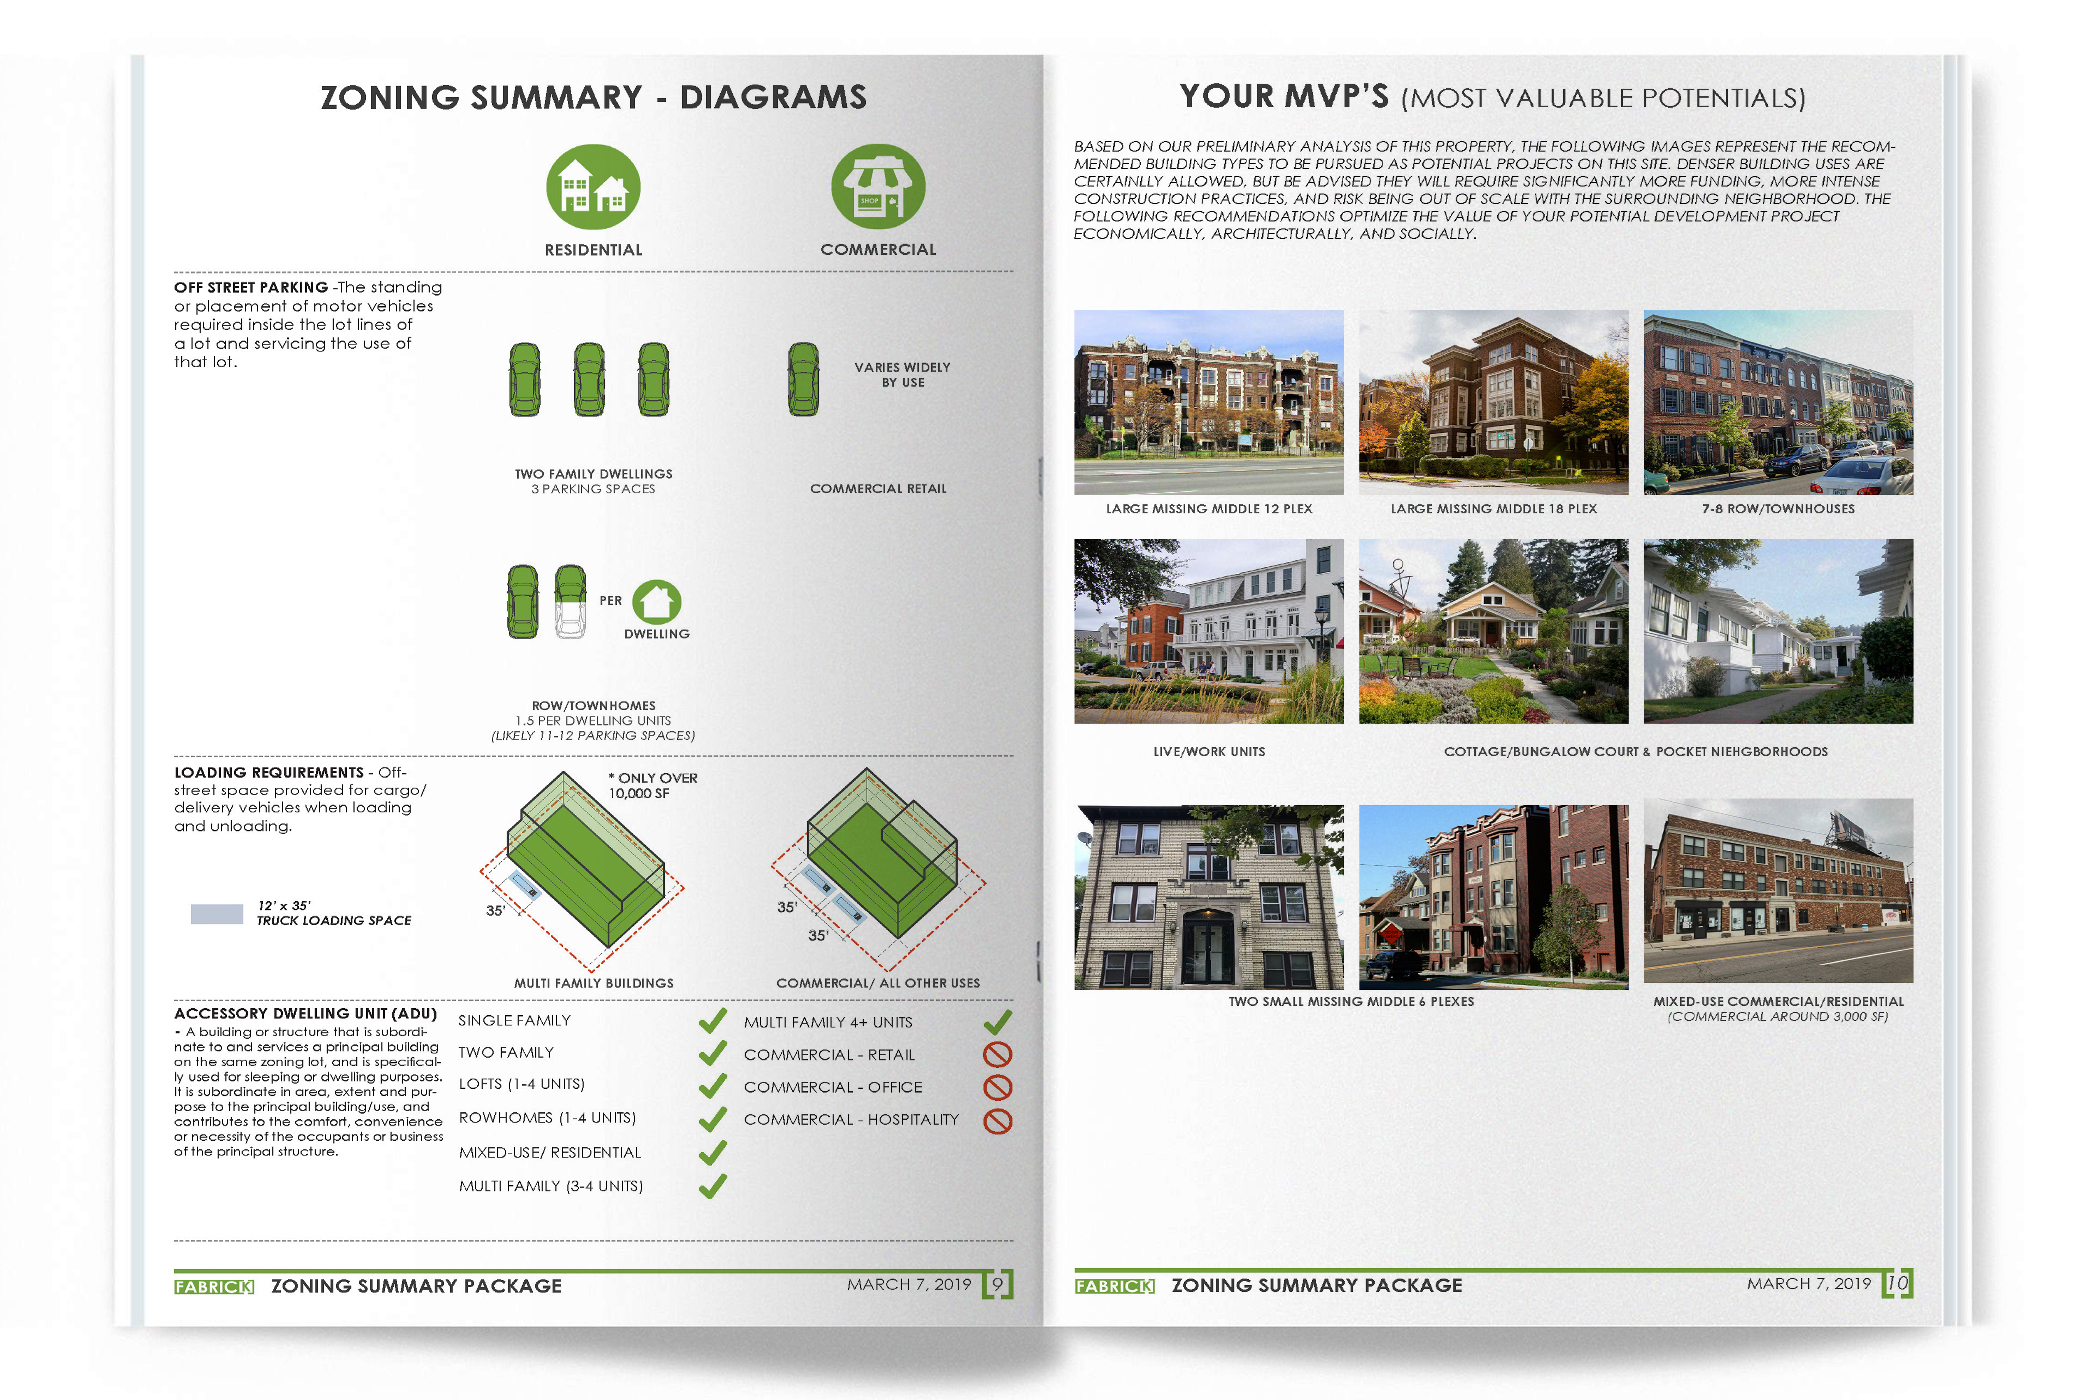 Excerpt from Zoning Summary